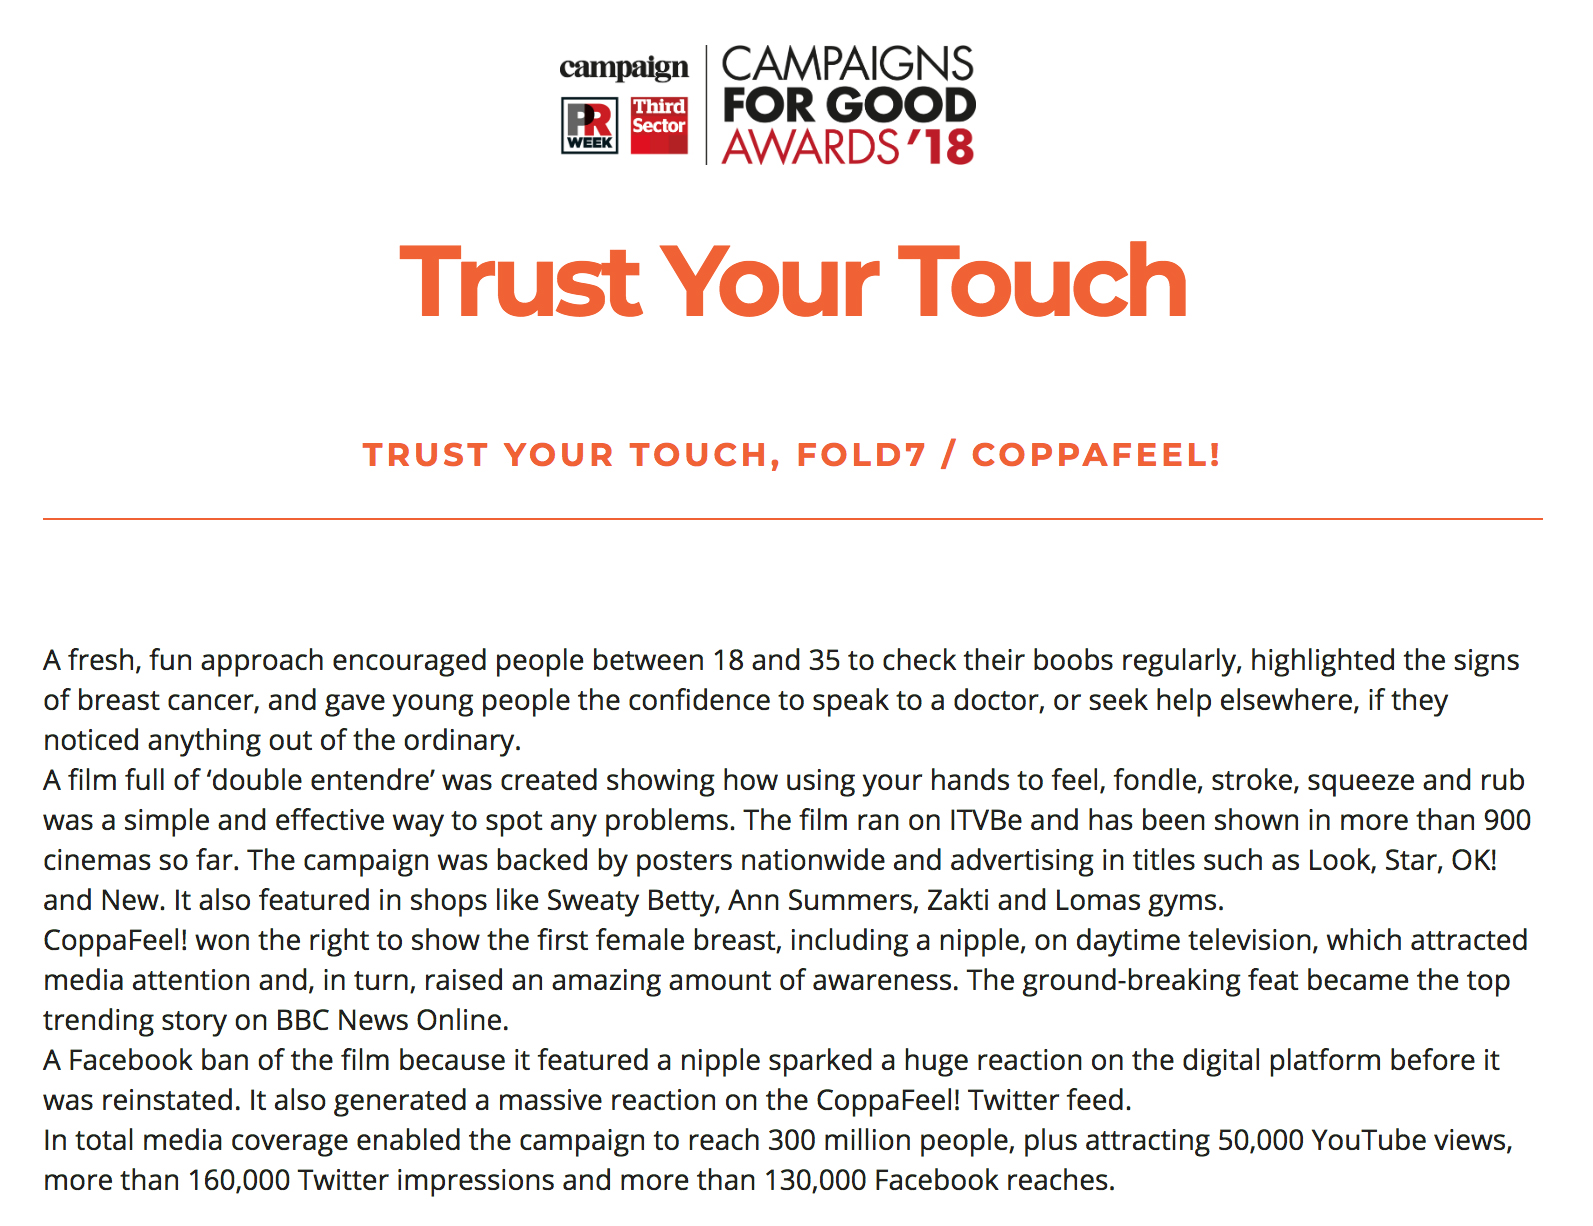 CoppaFeel! ad wins award - Campaign Magazine and PR Week voted Trust Your Touch the best Public Awareness Campaign of 2018 in their Campaigns For Good Awards. YAY!